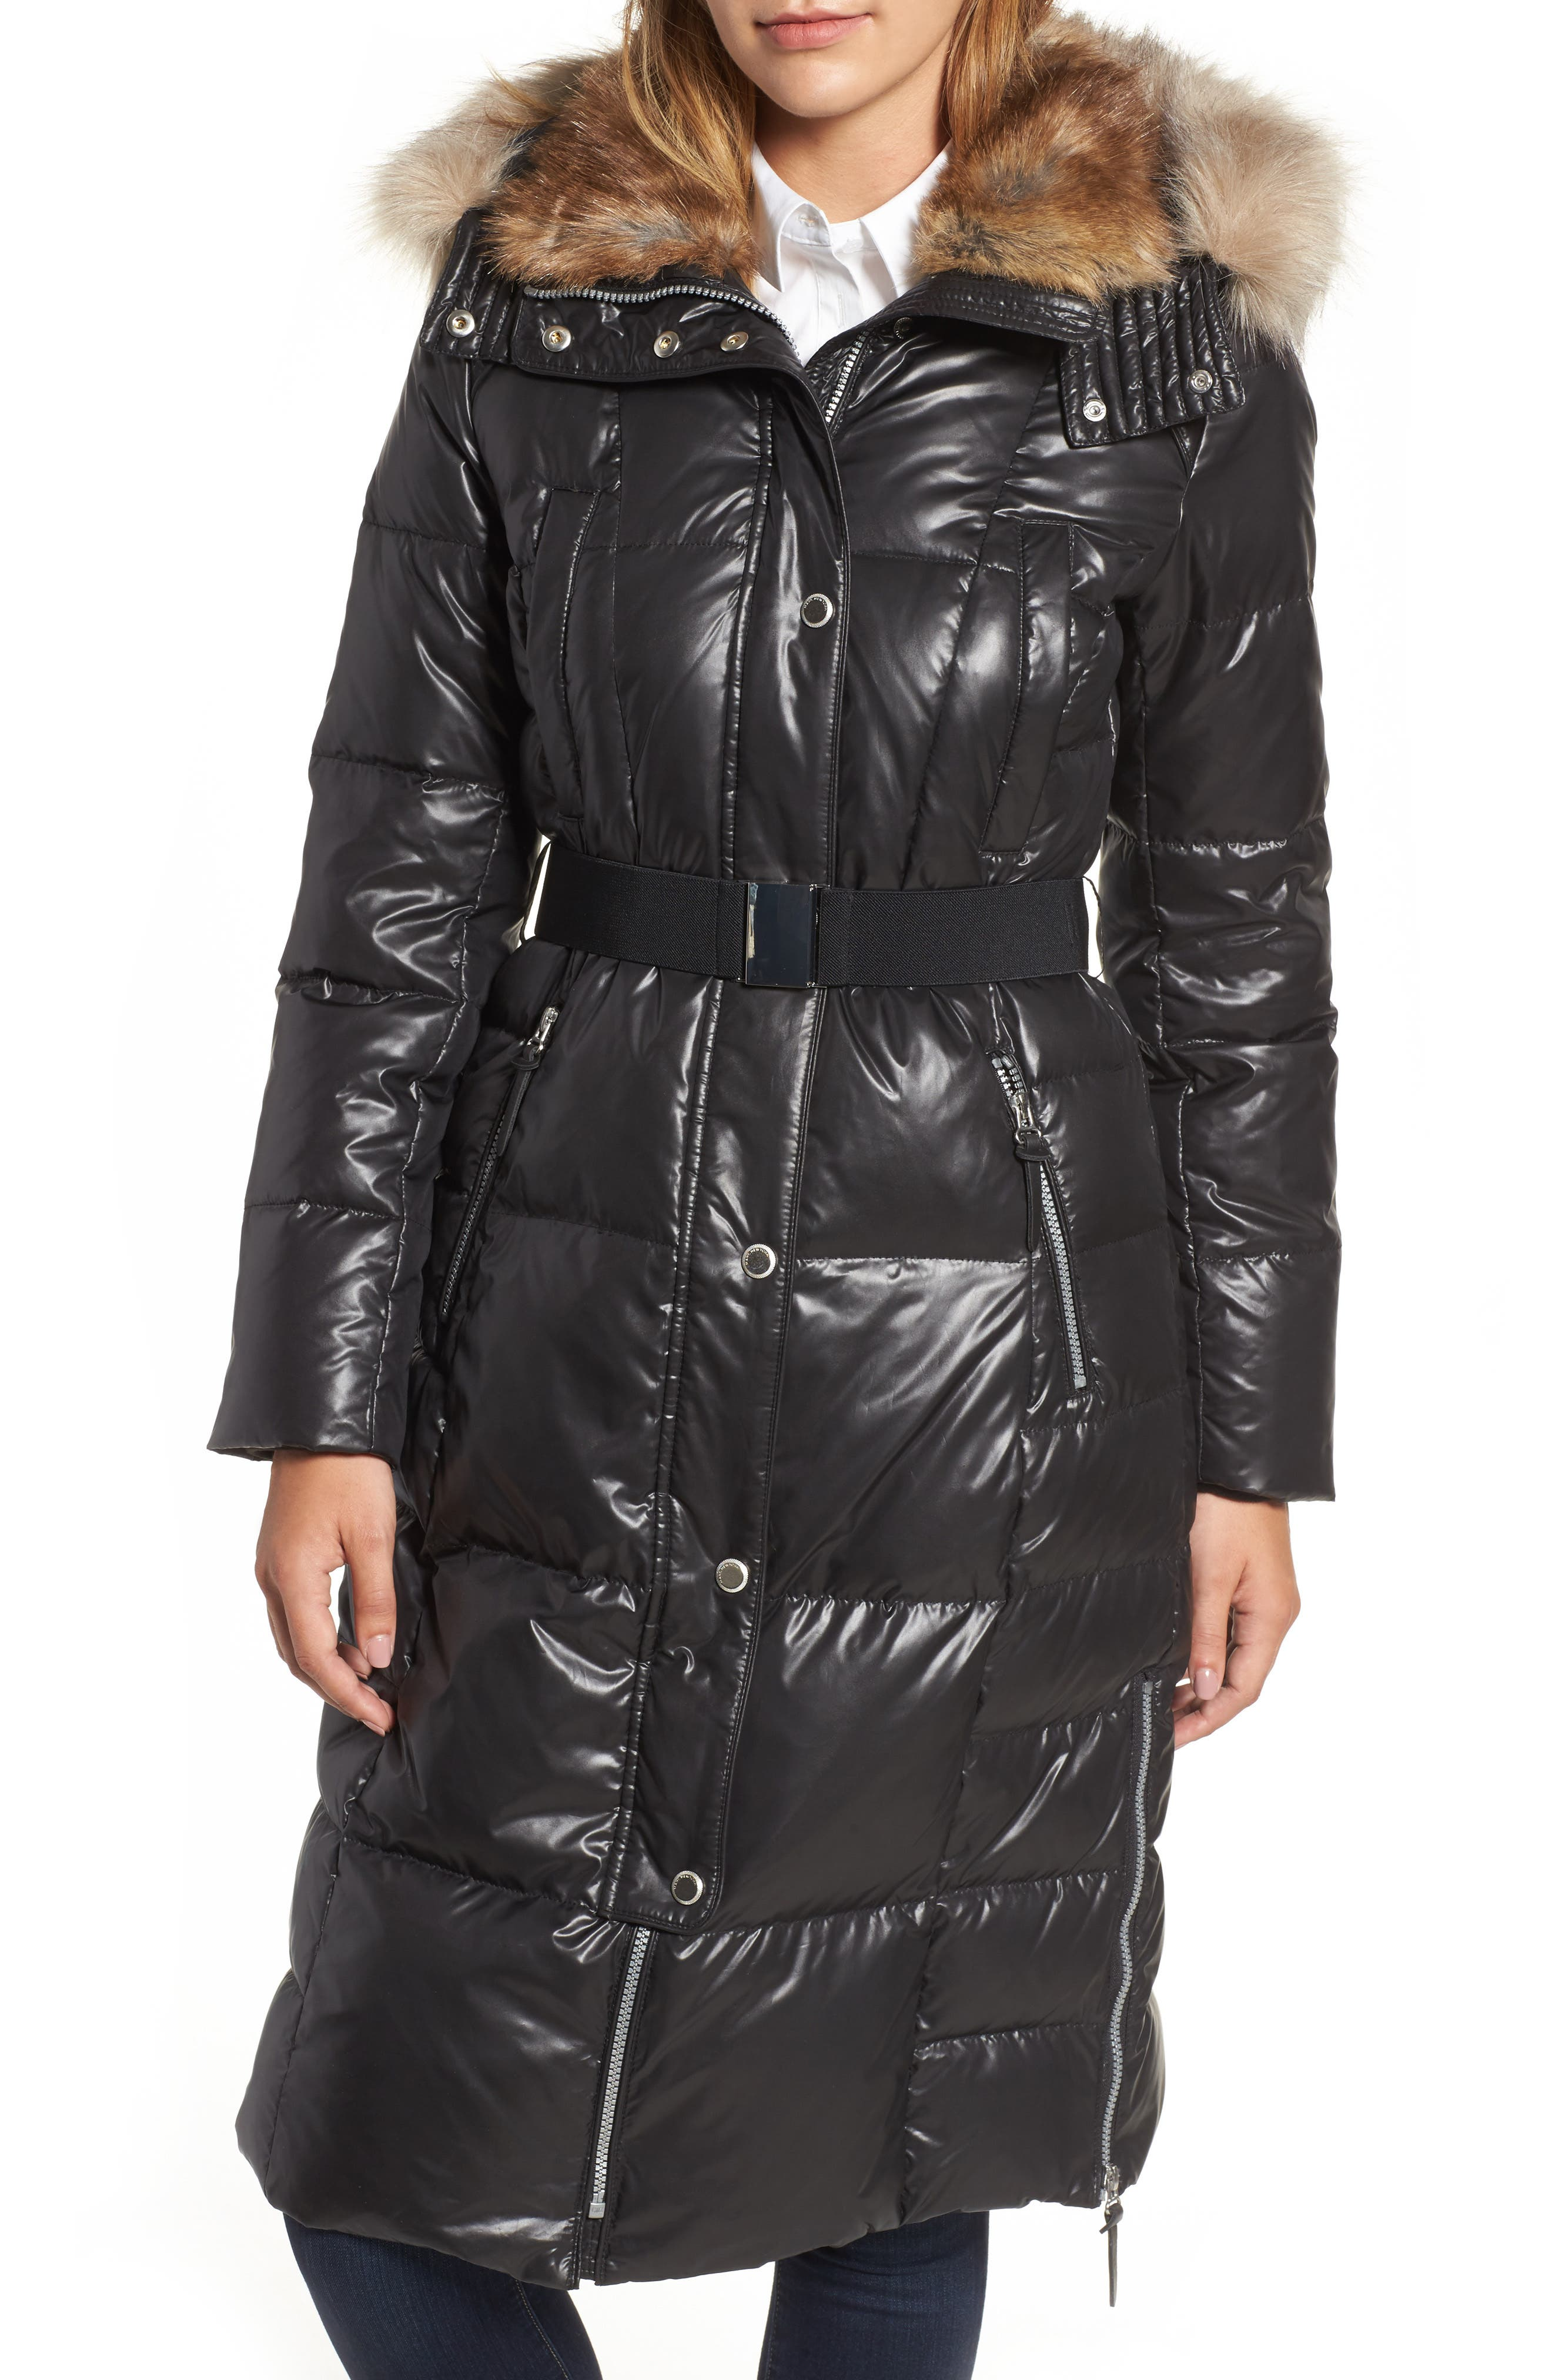 Alternate Image 1 Selected - Andrew Marc Lacquer Down Puffer Jacket with Faux Fur Hood